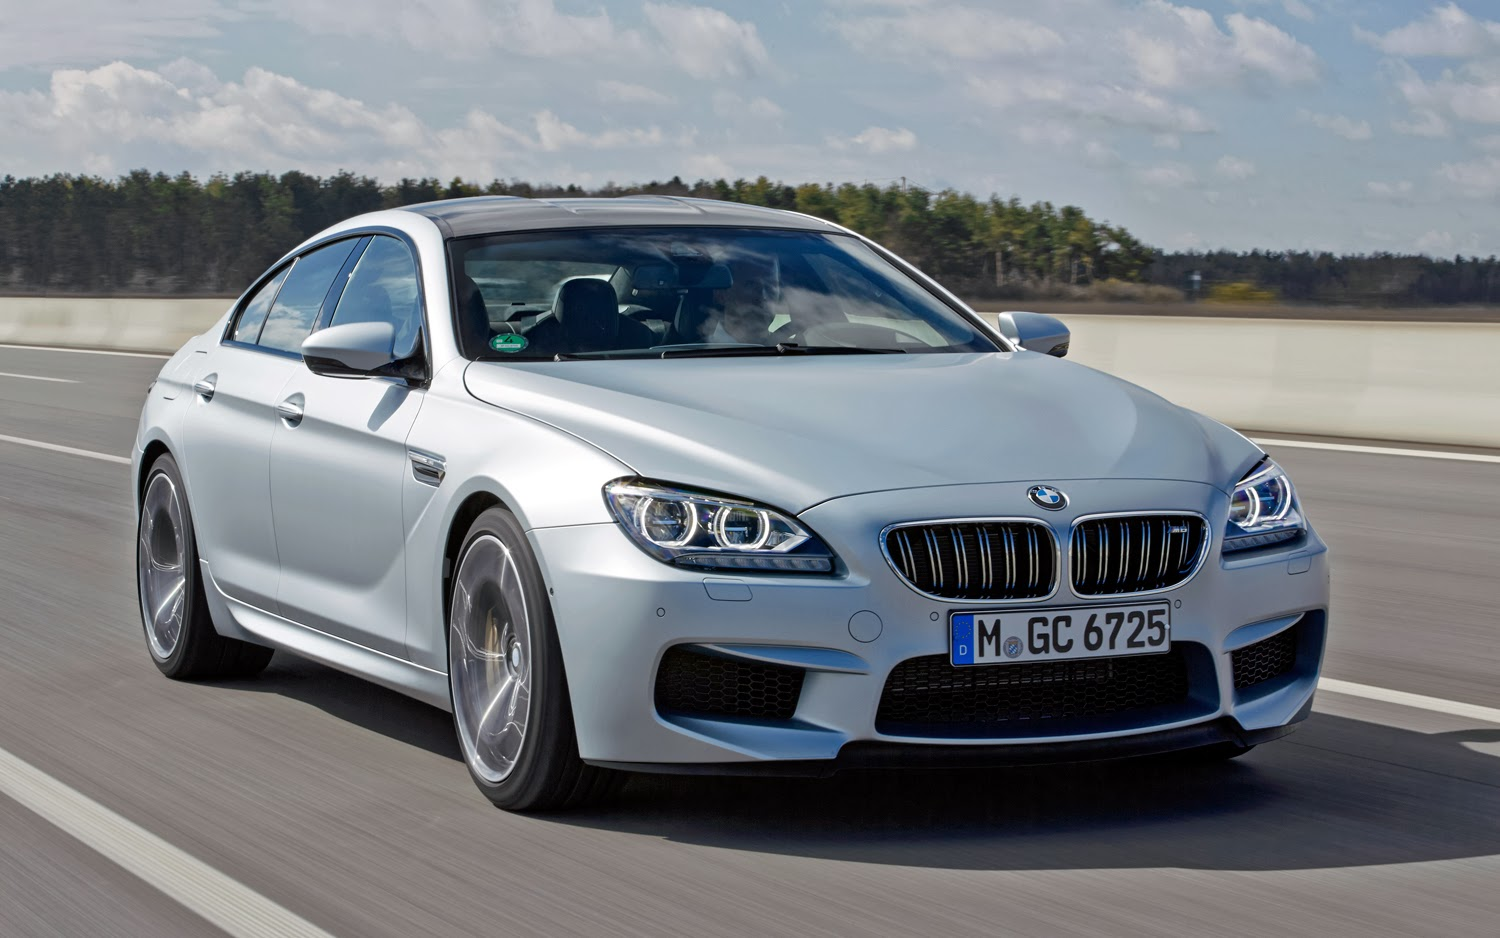 2014 bmw m6 gran coupe review and new design auto review 2014. Black Bedroom Furniture Sets. Home Design Ideas